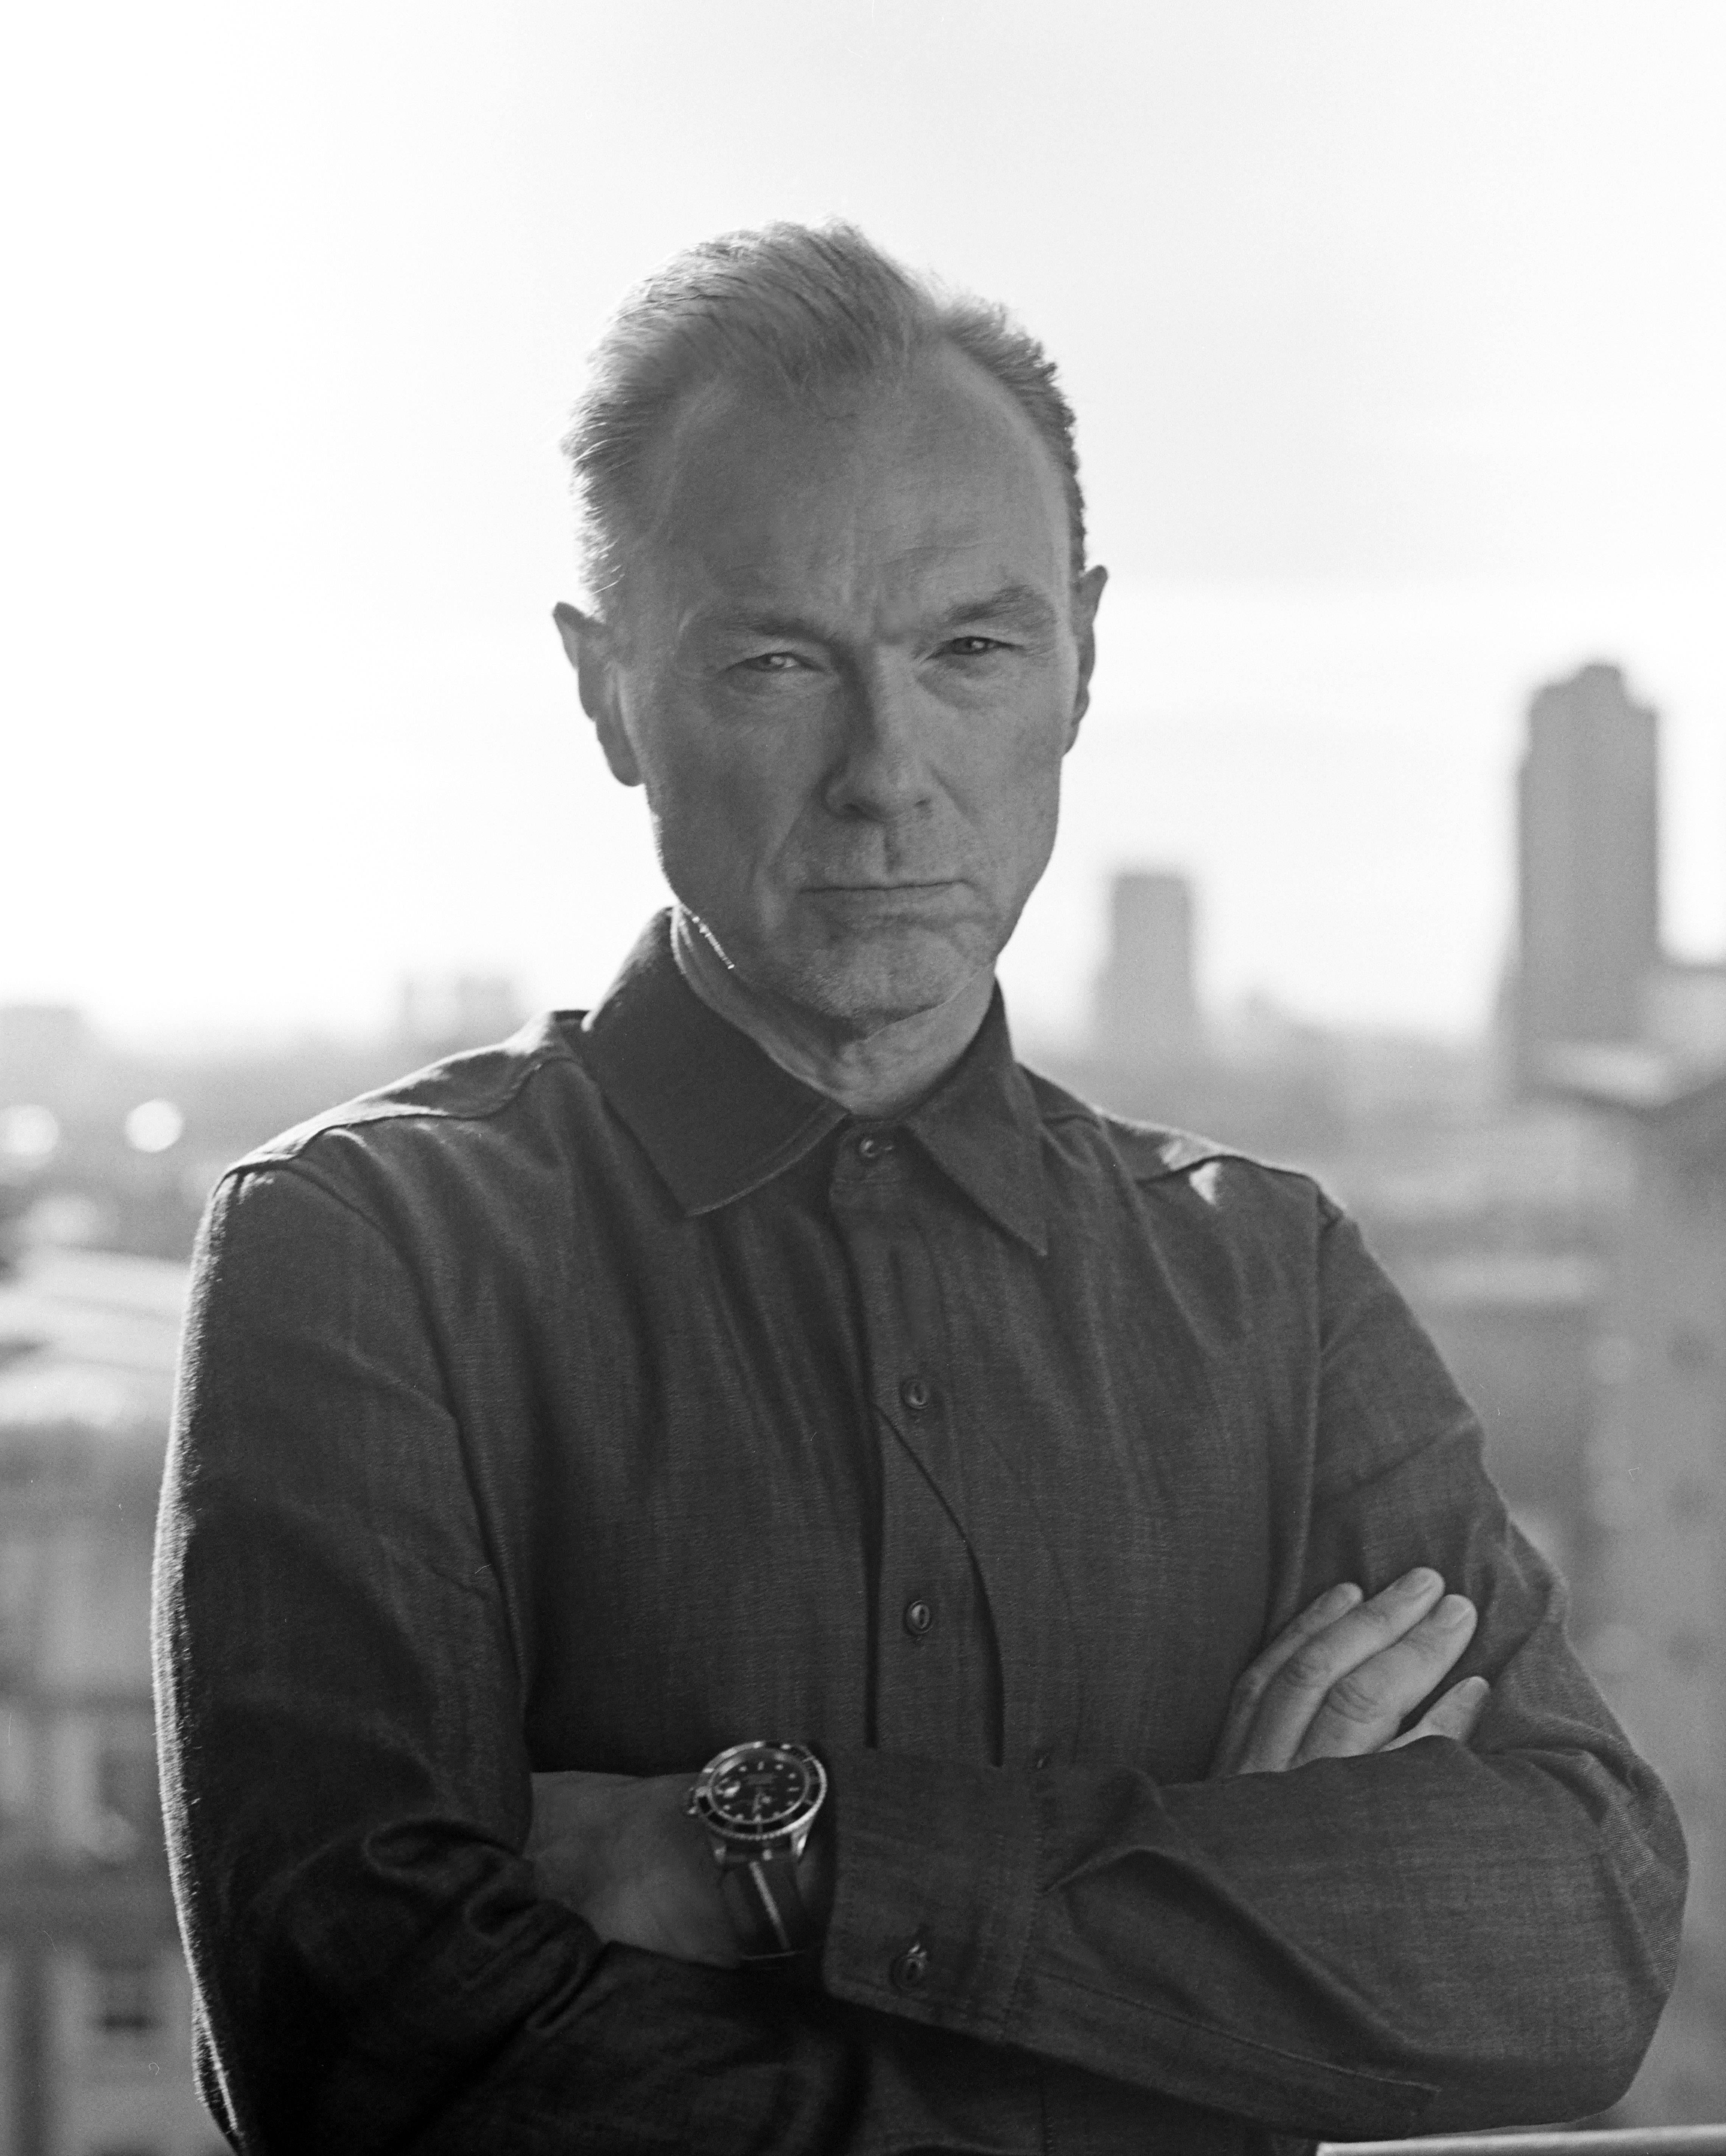 Gary Kemp Black and White Photography Limited Edition of 9 Personally Signed